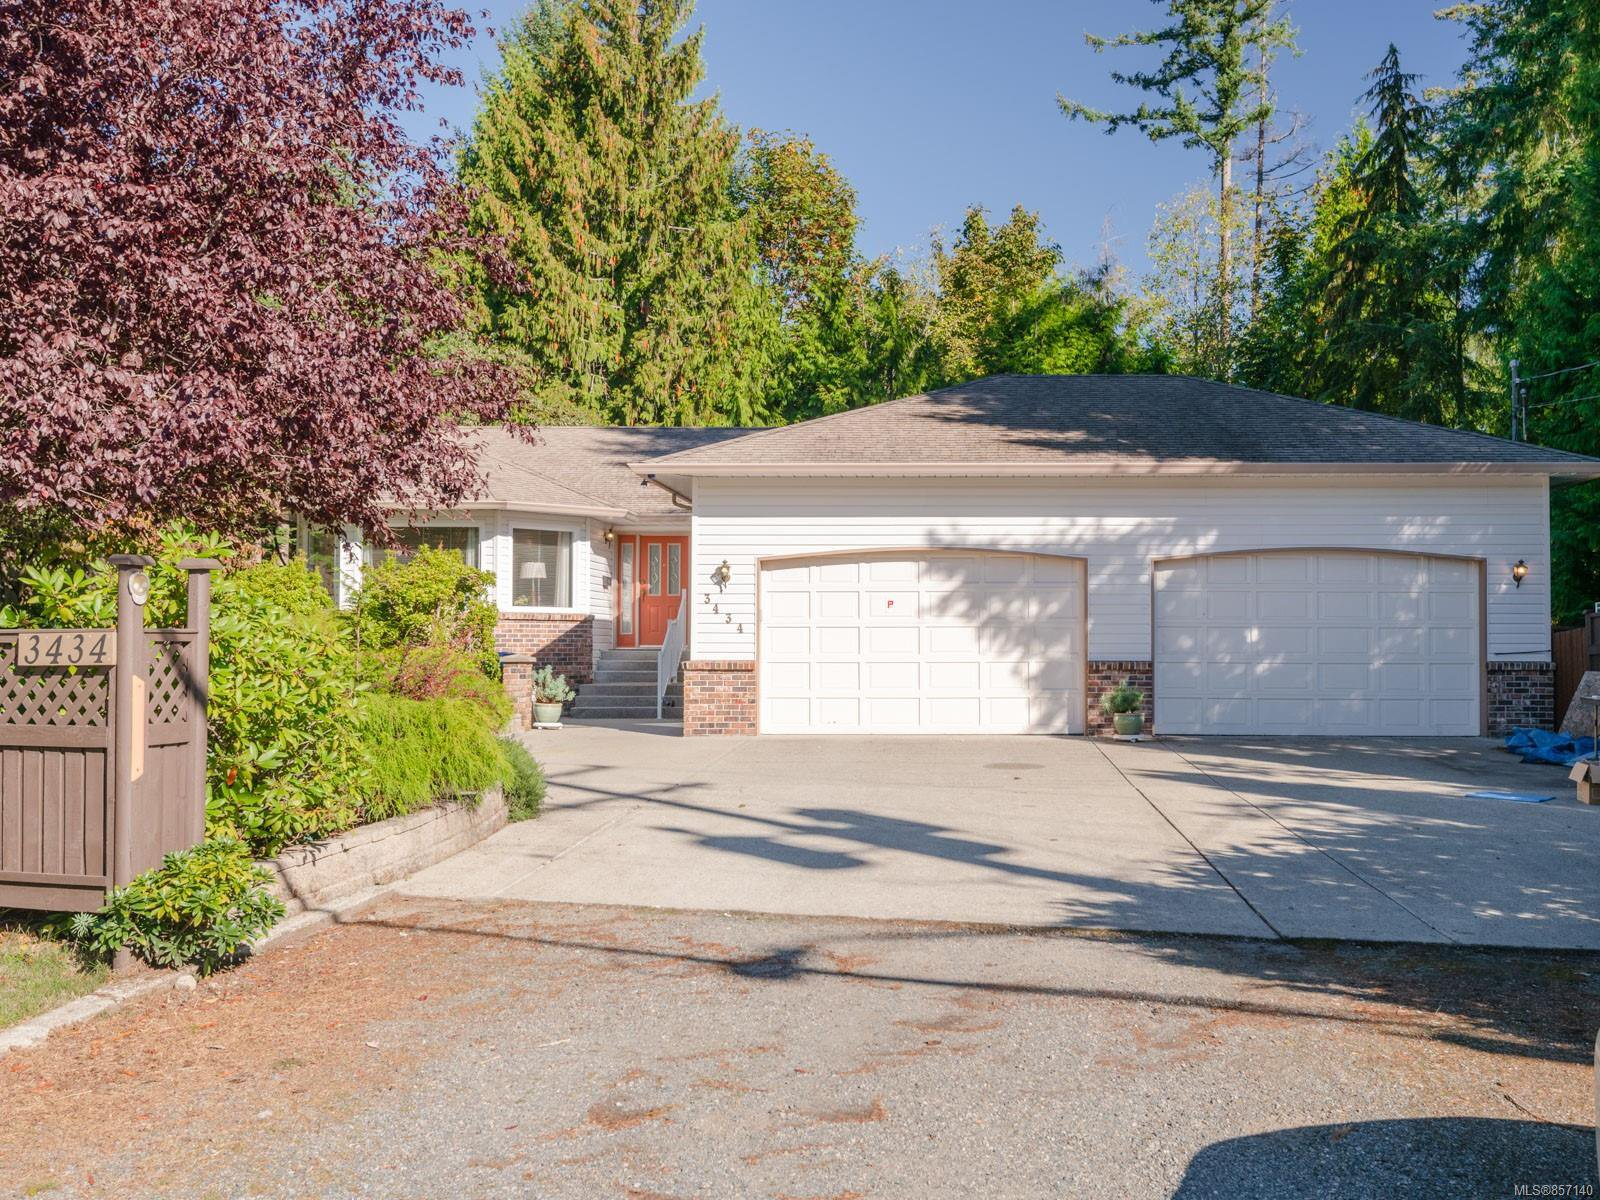 Main Photo: 3434 Uplands Dr in : Na Uplands House for sale (Nanaimo)  : MLS®# 857140